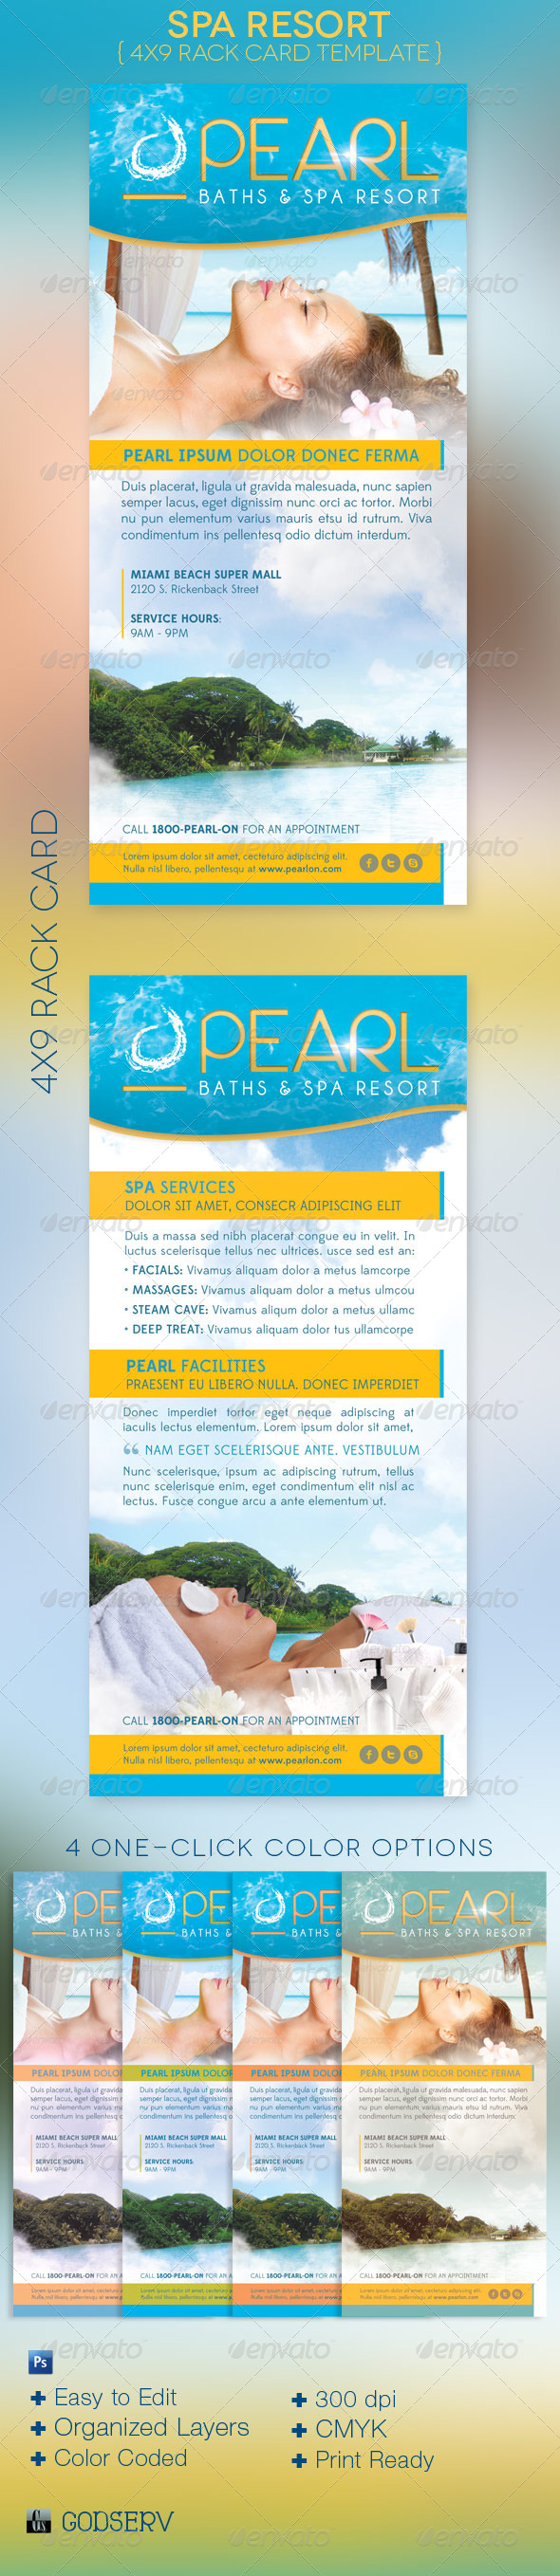 GraphicRiver Spa Resort Rack Card Template 4267426